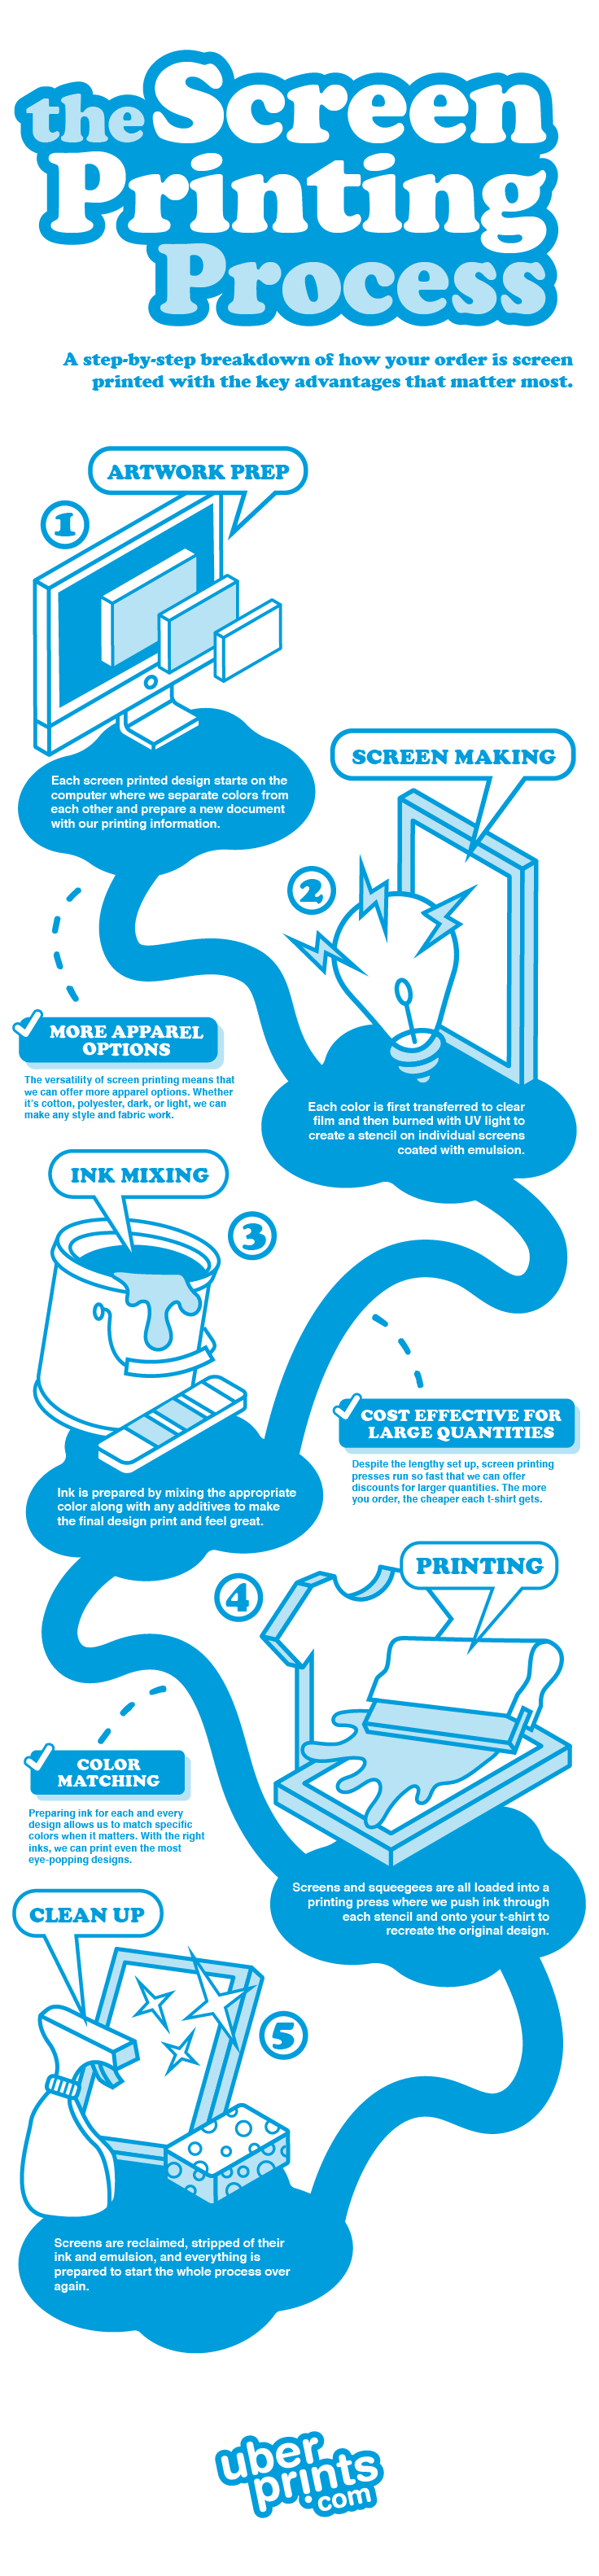 An UberPrints designed infographic breaking down the key steps and advantages to the screen printing process.